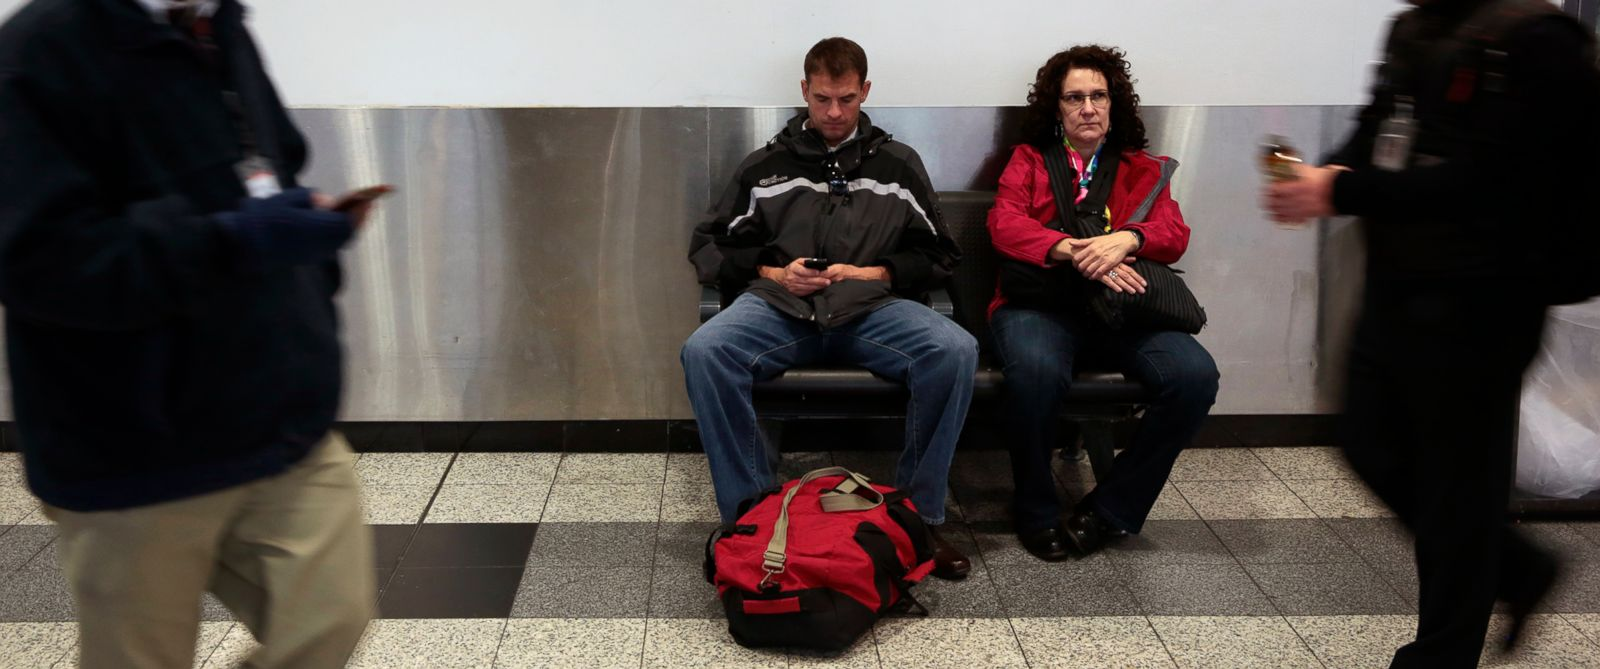 PHOTO: Two travelers wait in the ticketing area of B terminal at La Guardia Airport in New York, Jan. 17, 2014.